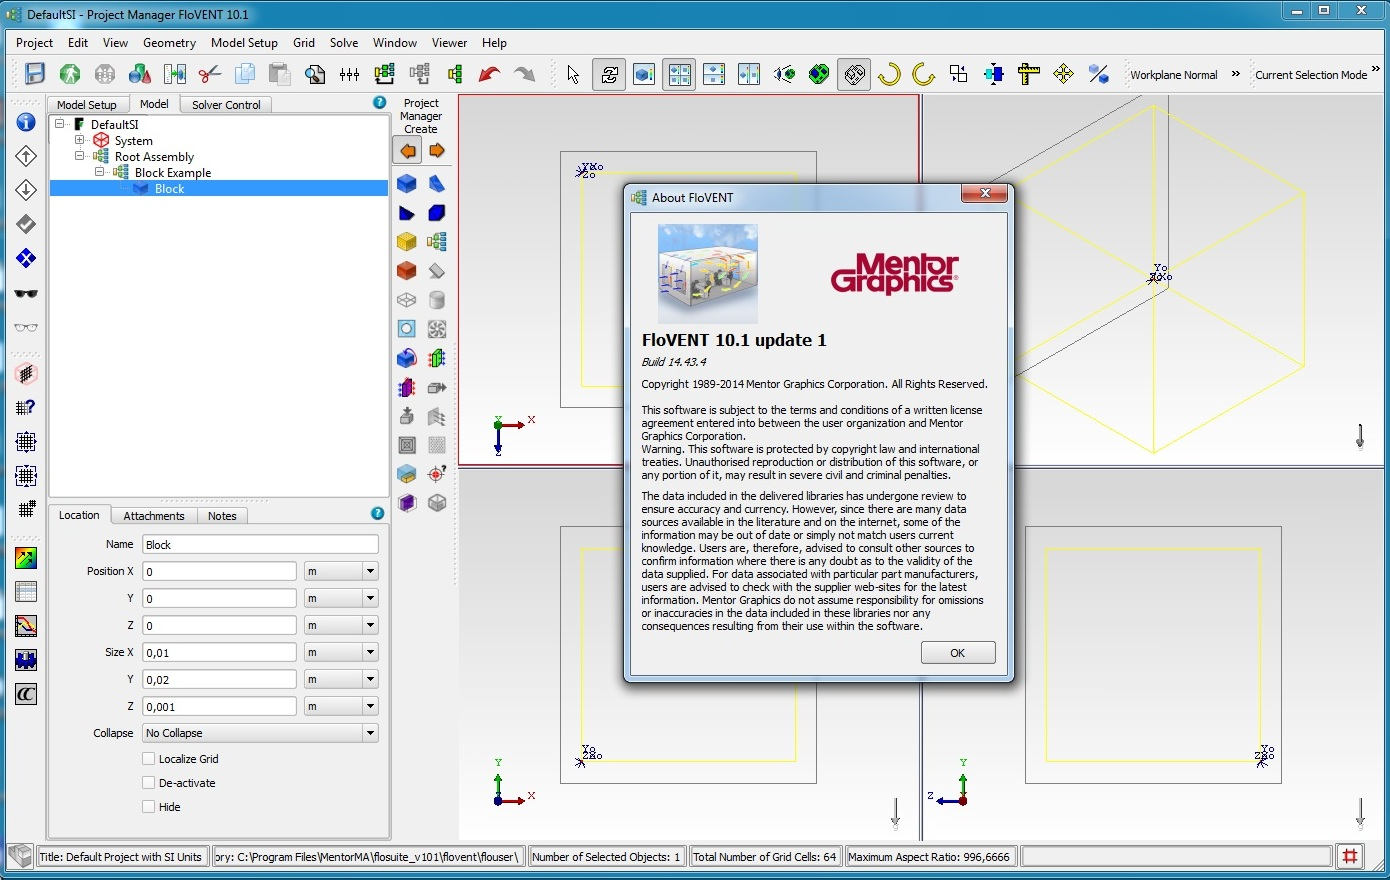 Mentor Graphics FloVENT 10.1 Update1